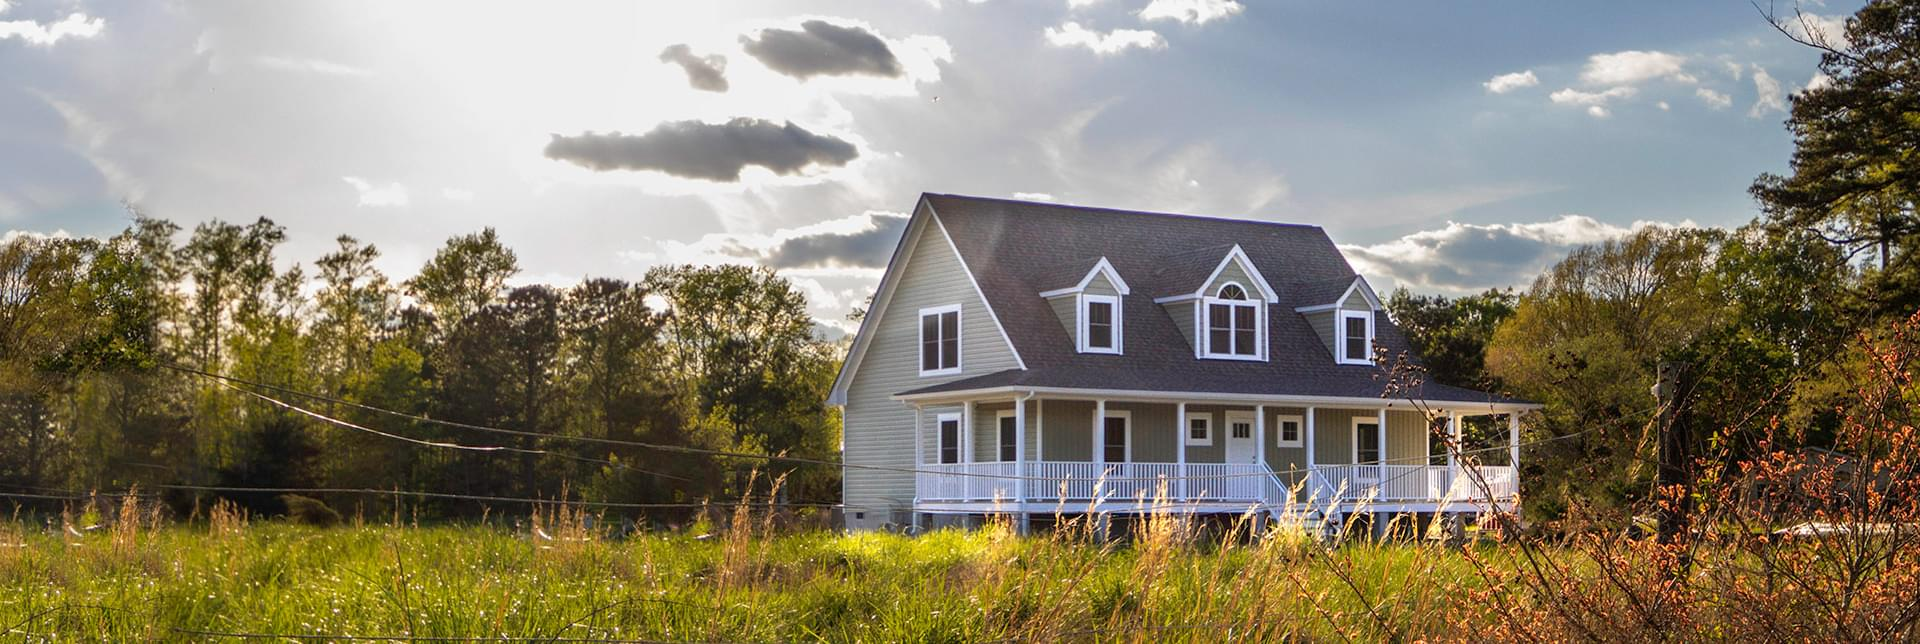 New Homes in Pamlico County NC